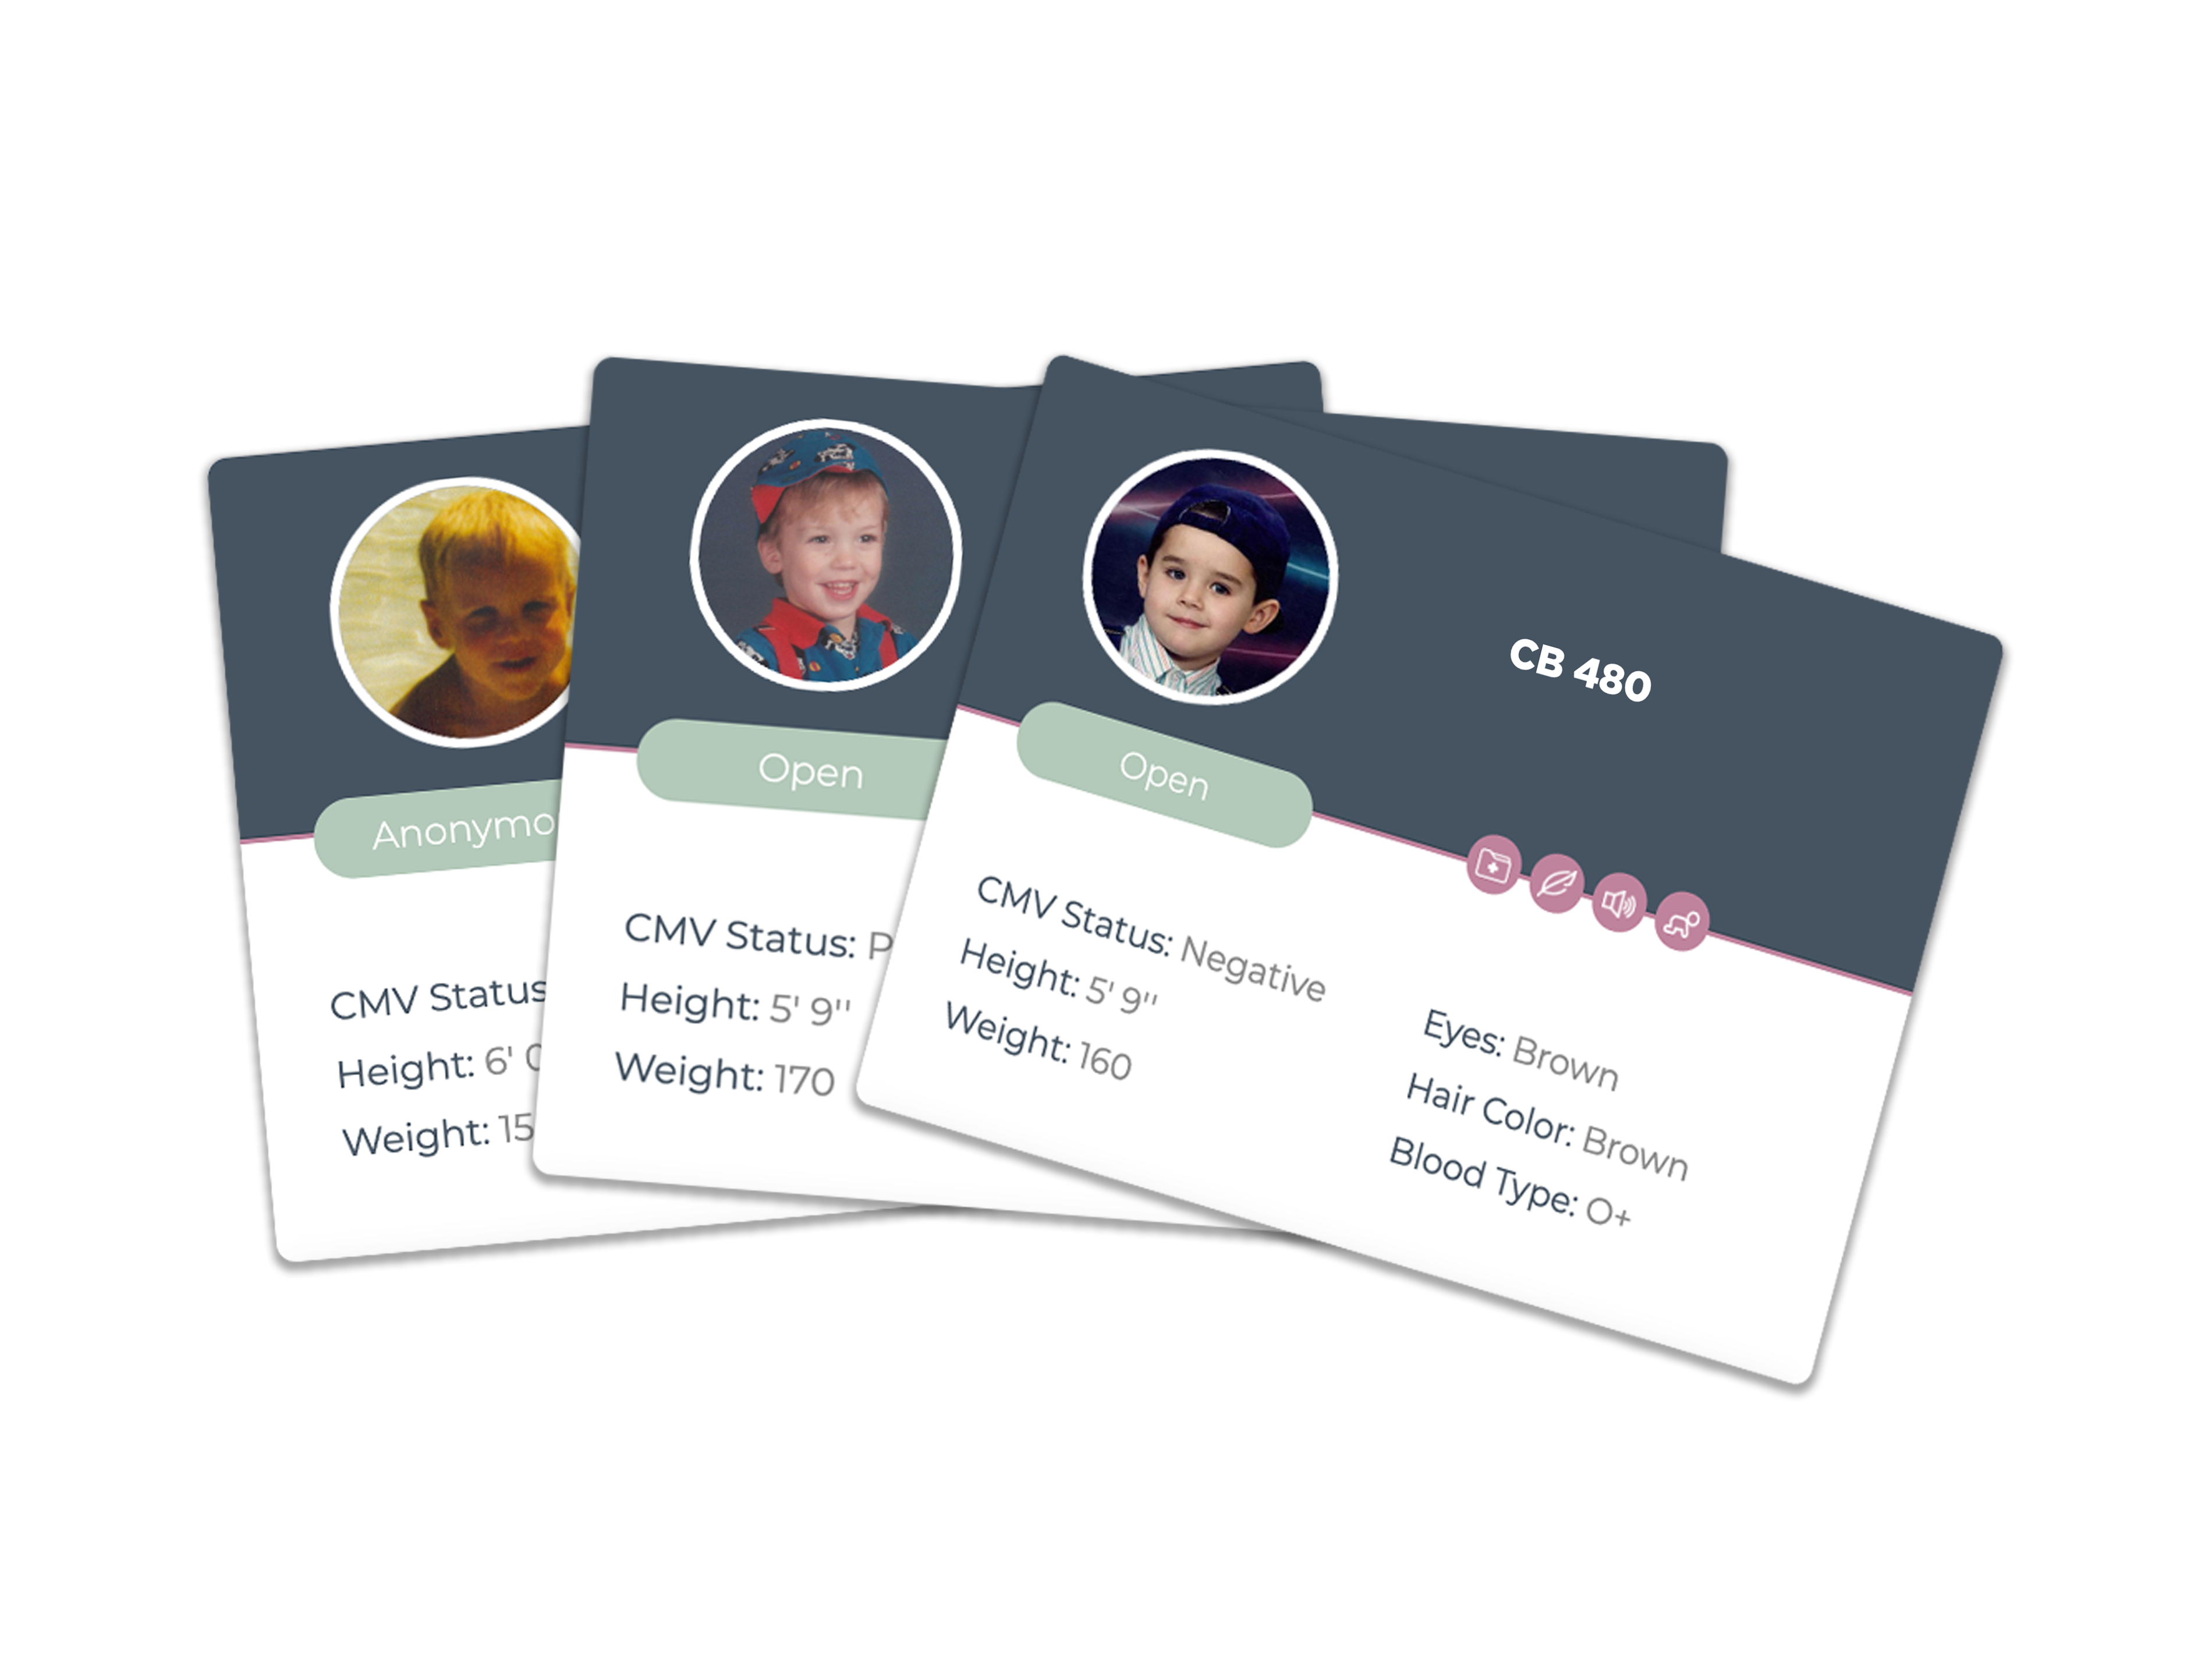 donor cards with descriptions